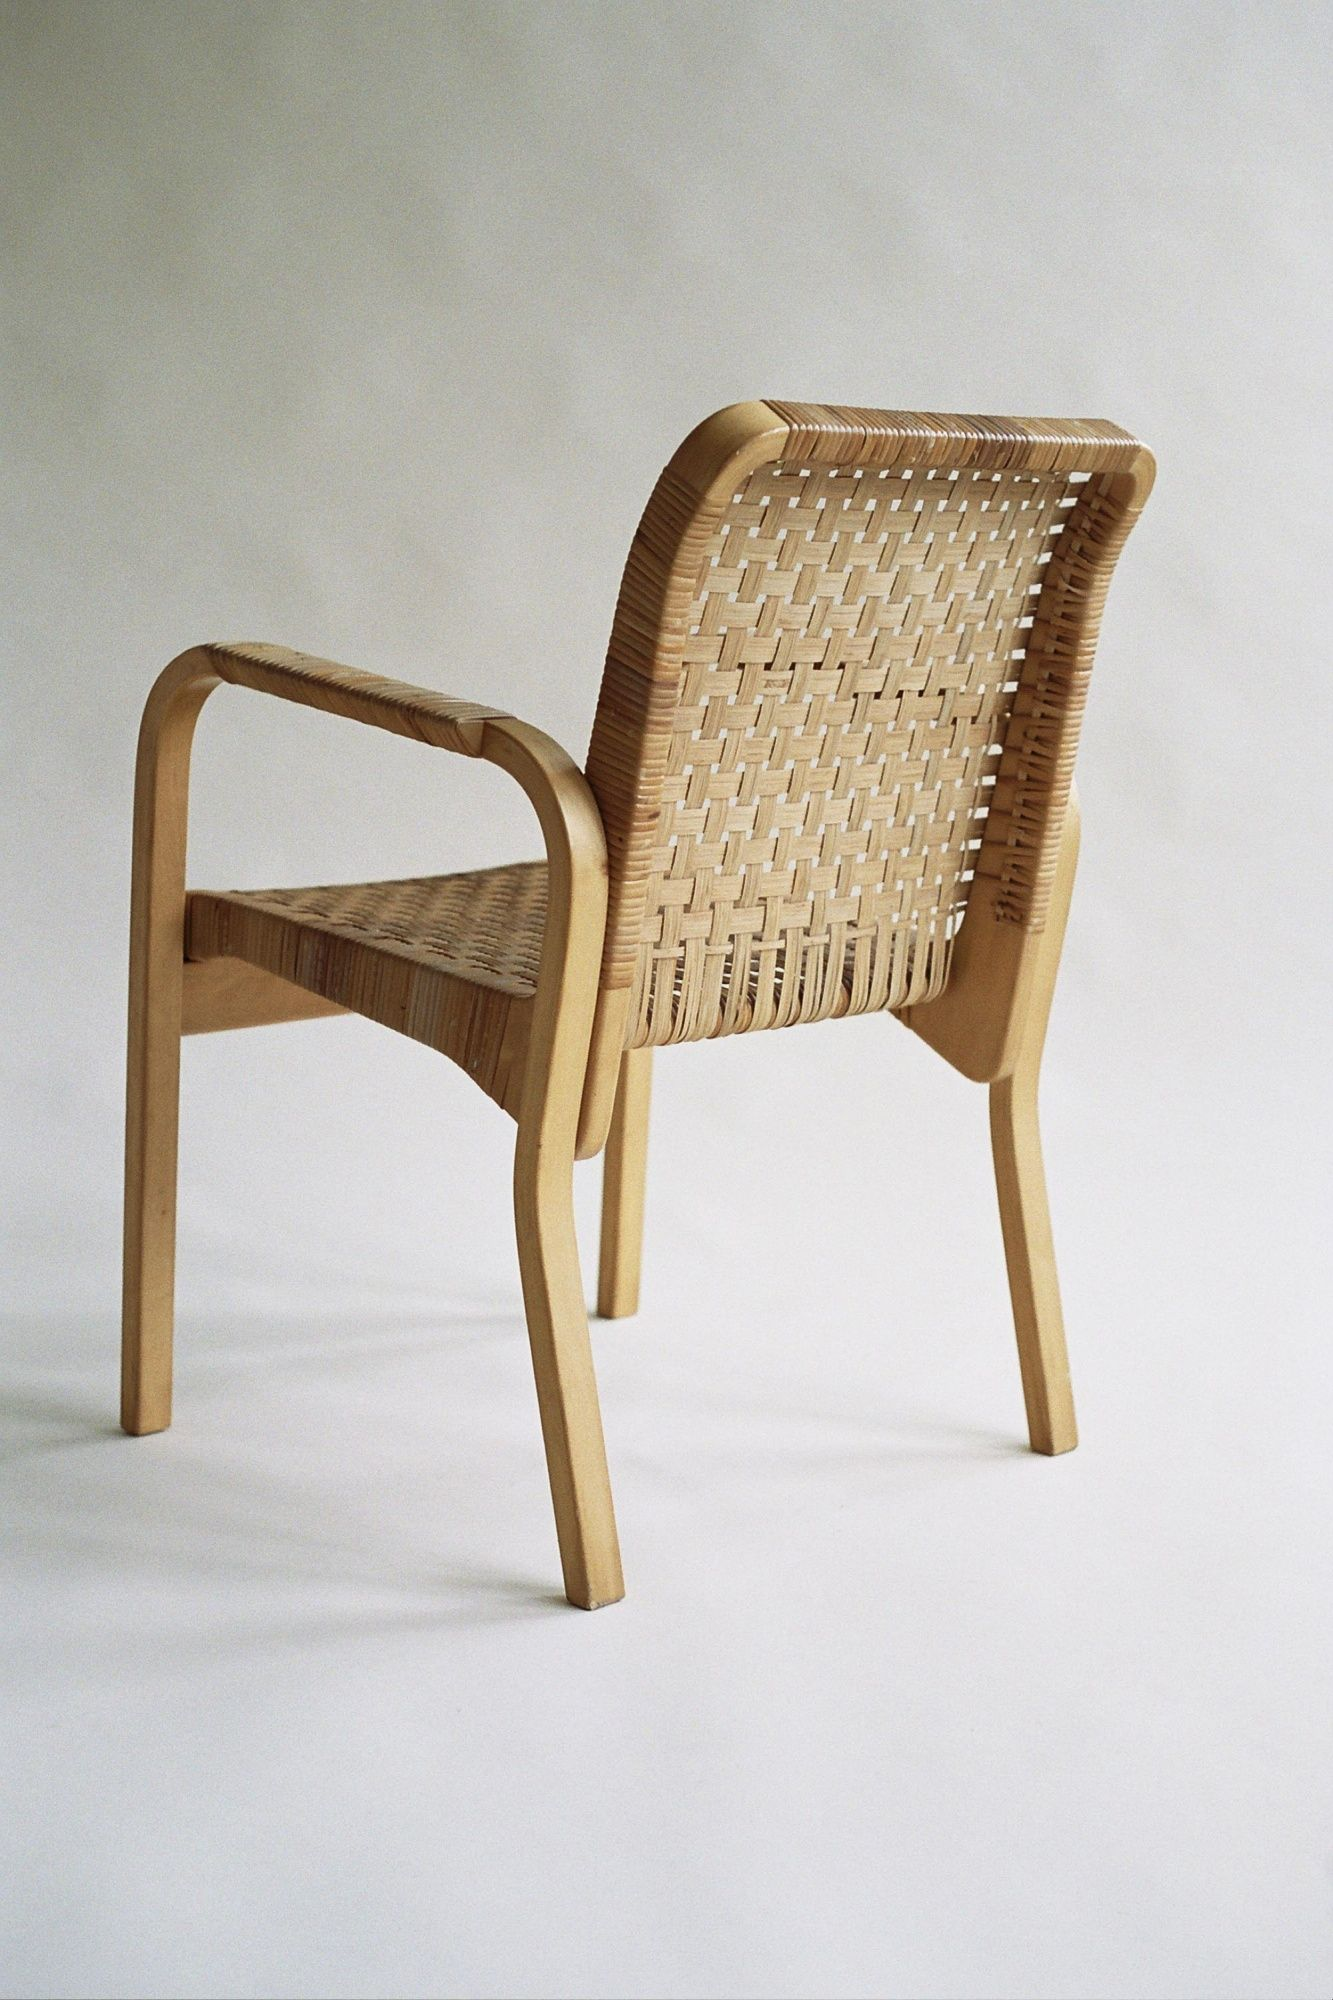 Muebles Tot Stil - Caned Armchair 45 By Alvar Aalto Back Muebles Pinterest [mjhdah]https://lookaside.fbsbx.com/lookaside/crawler/media/?media_id=377014079364049